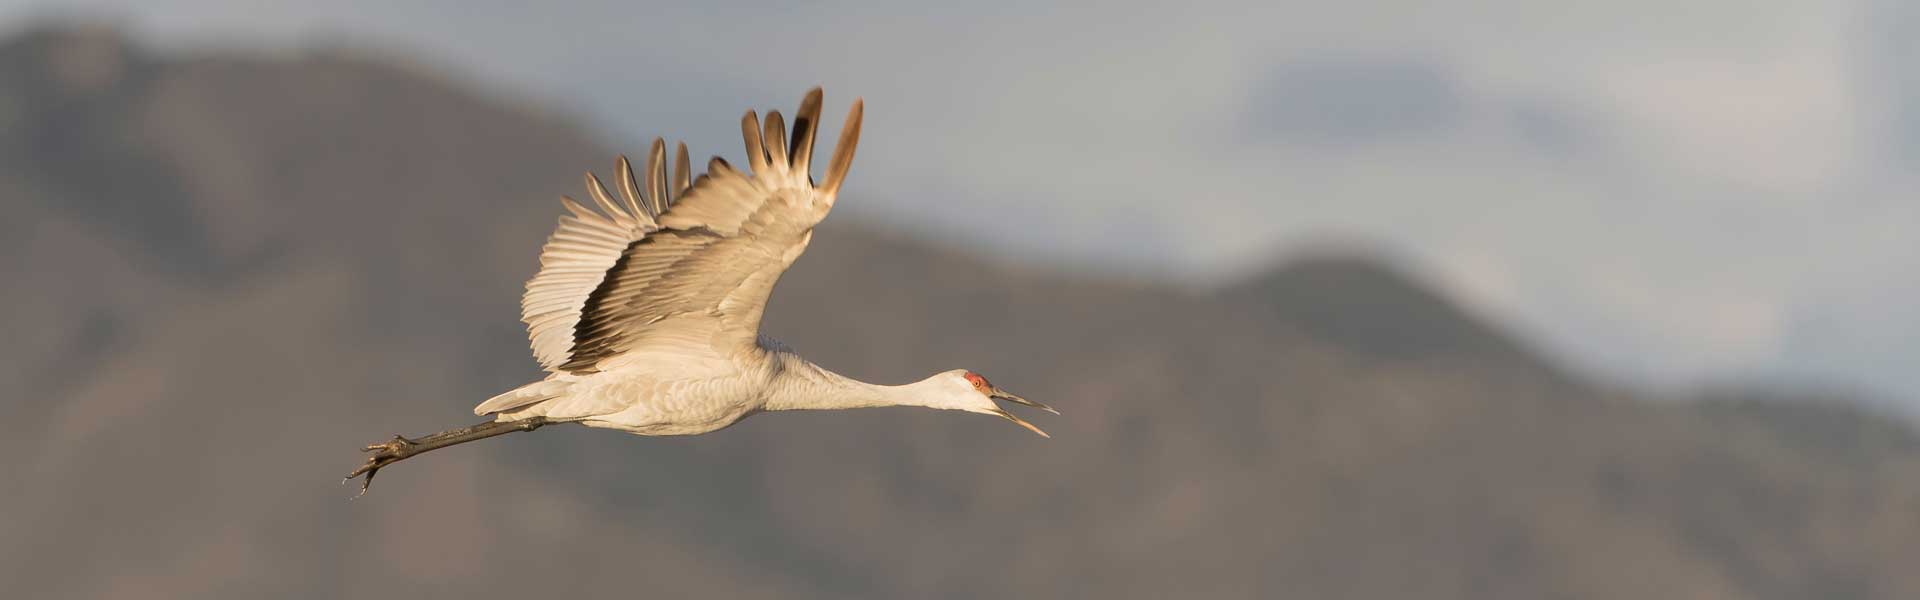 A sandhill crane in flight.